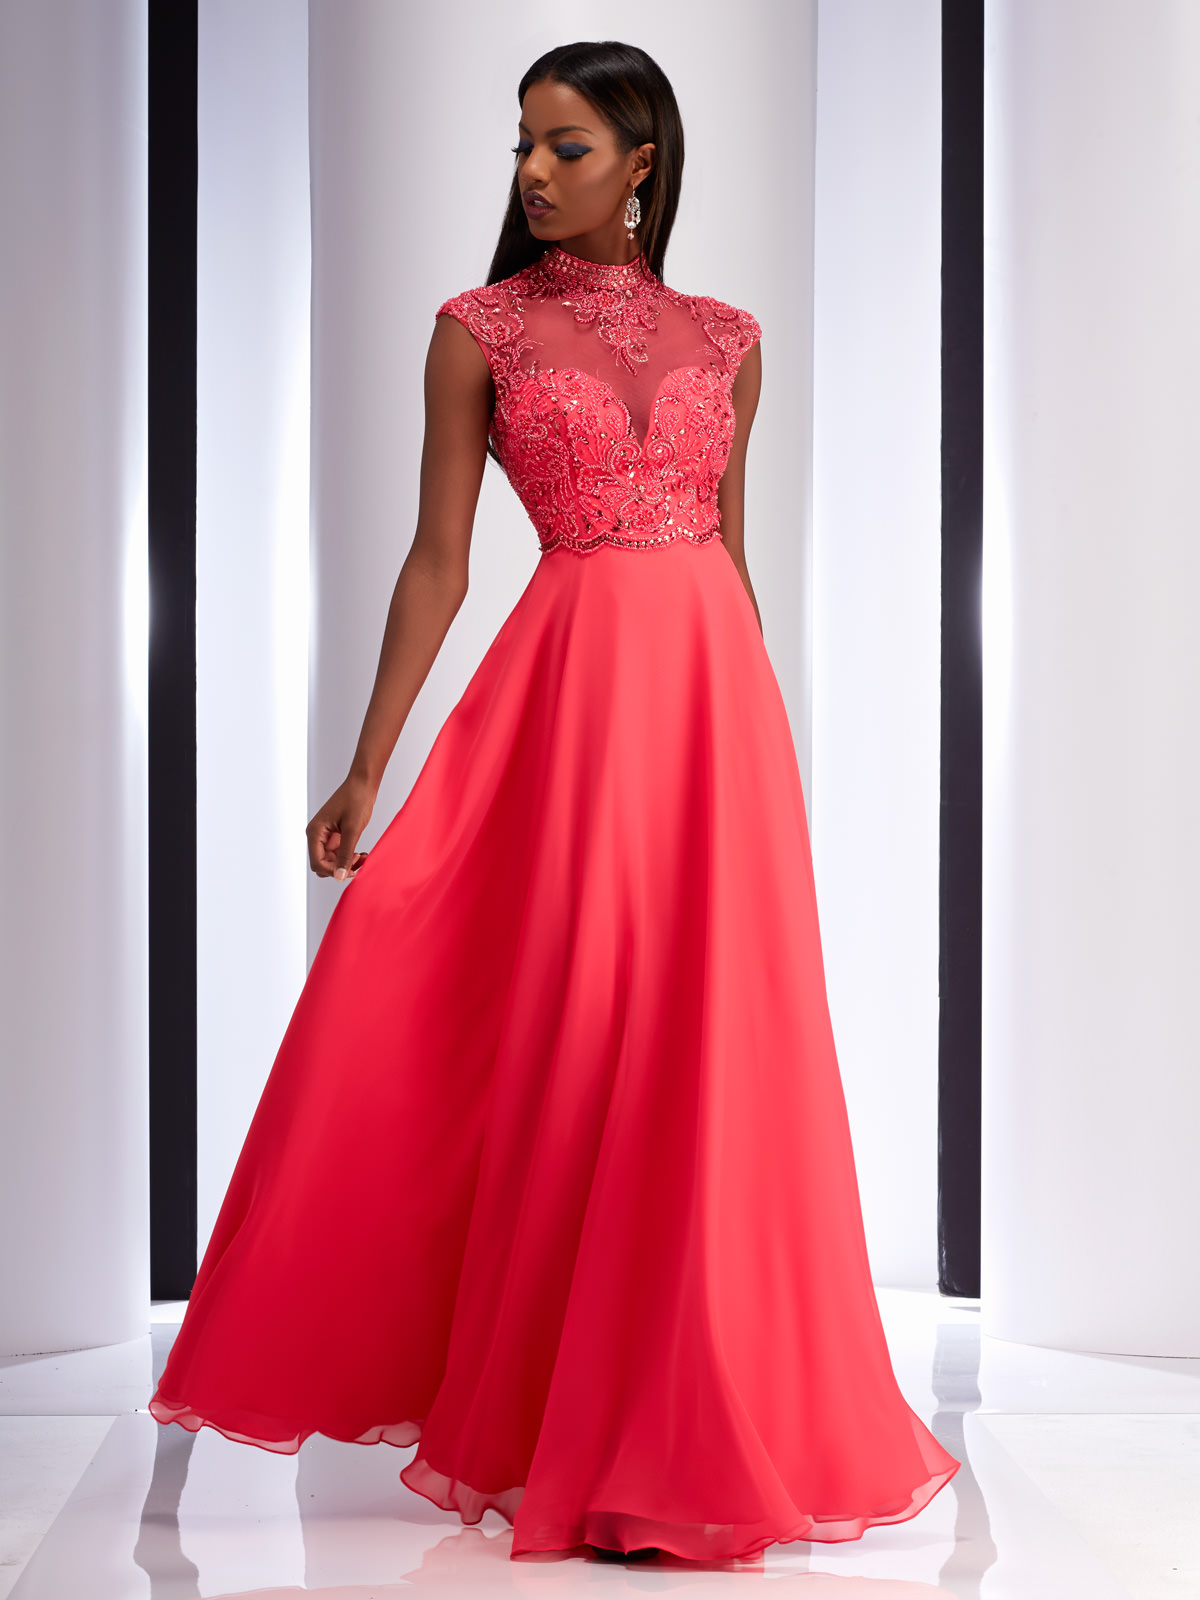 Prom Dresses Omaha Ne - Formal Dresses